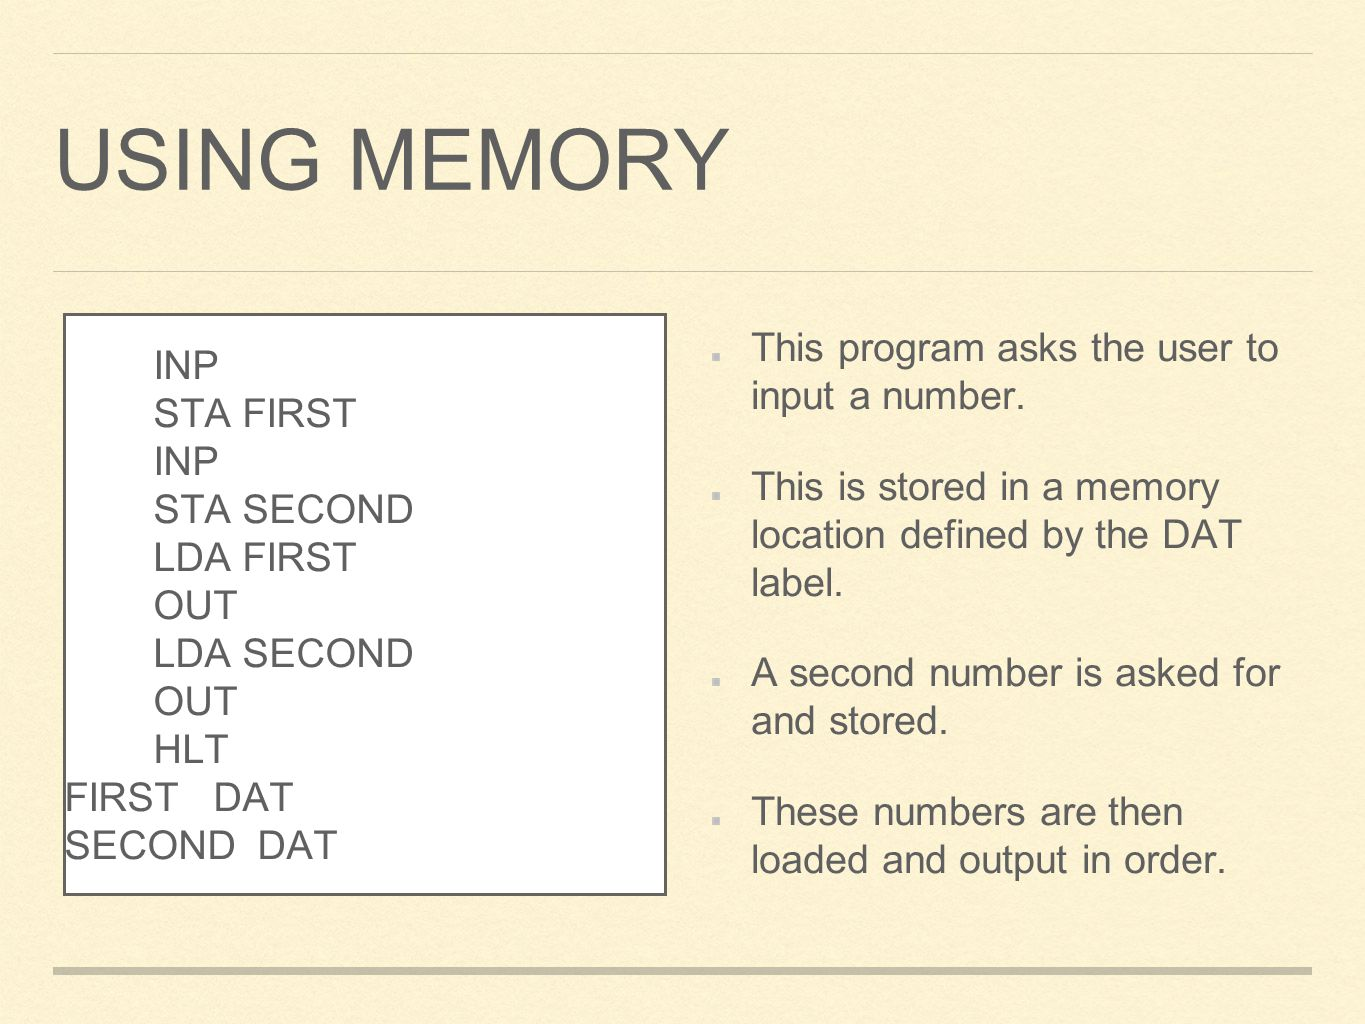 Using memory This program asks the user to input a number. INP